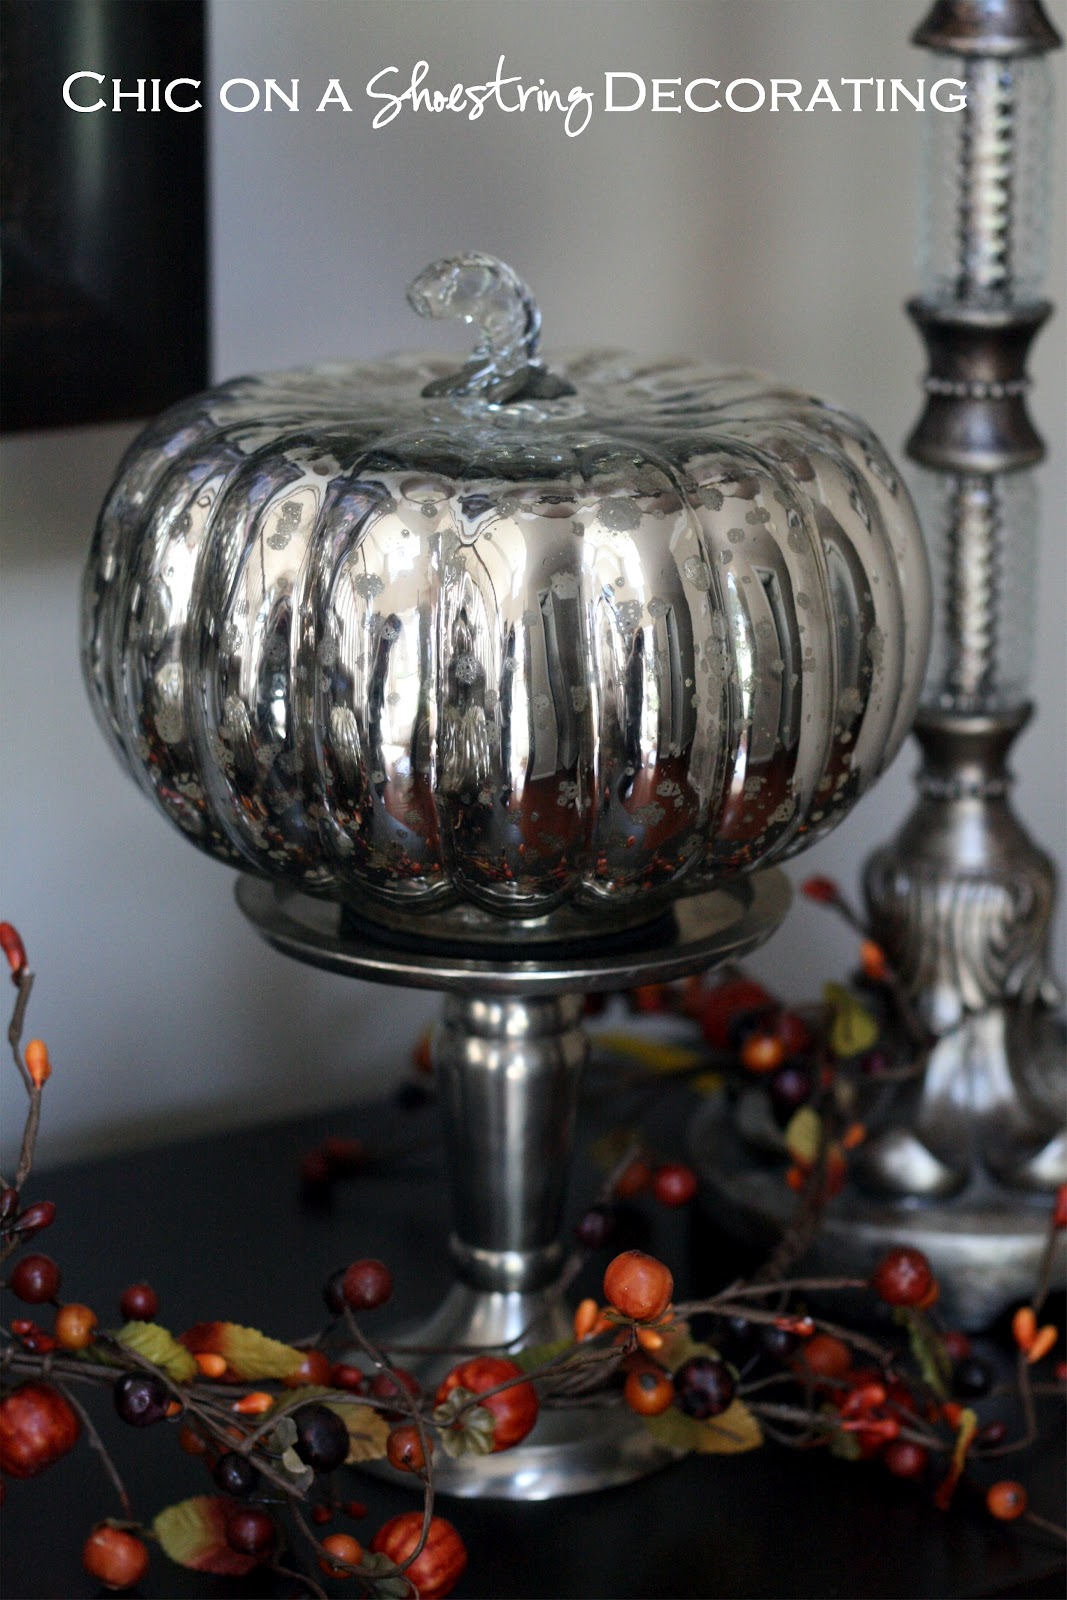 chic on a shoestring decorating pumpkinlicious mercury glass